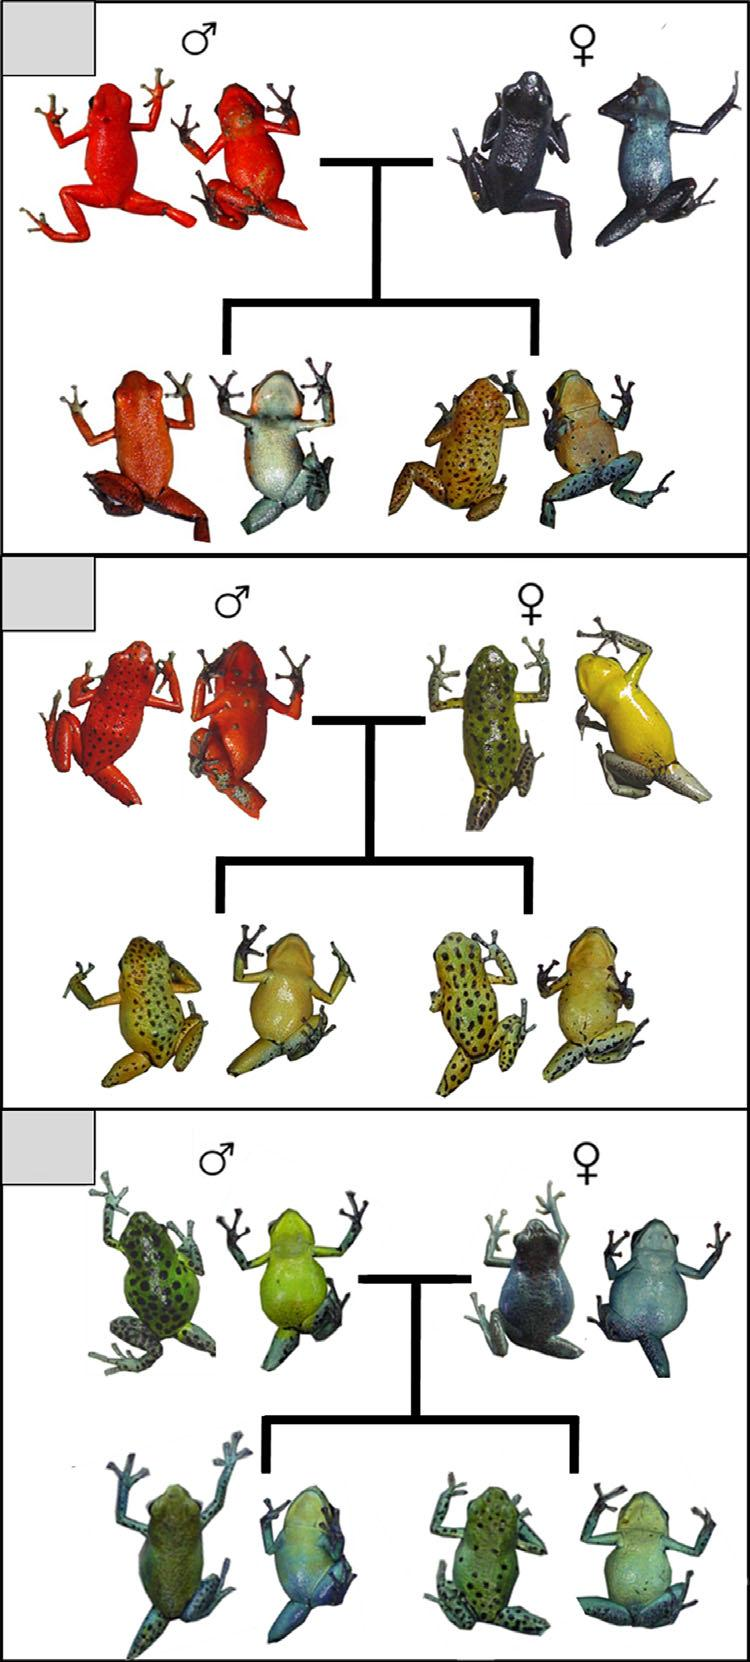 NO REPRODUCTIVE ISOLATION AMONG POISON FROG MORPHS 7 A B C Figure 3.